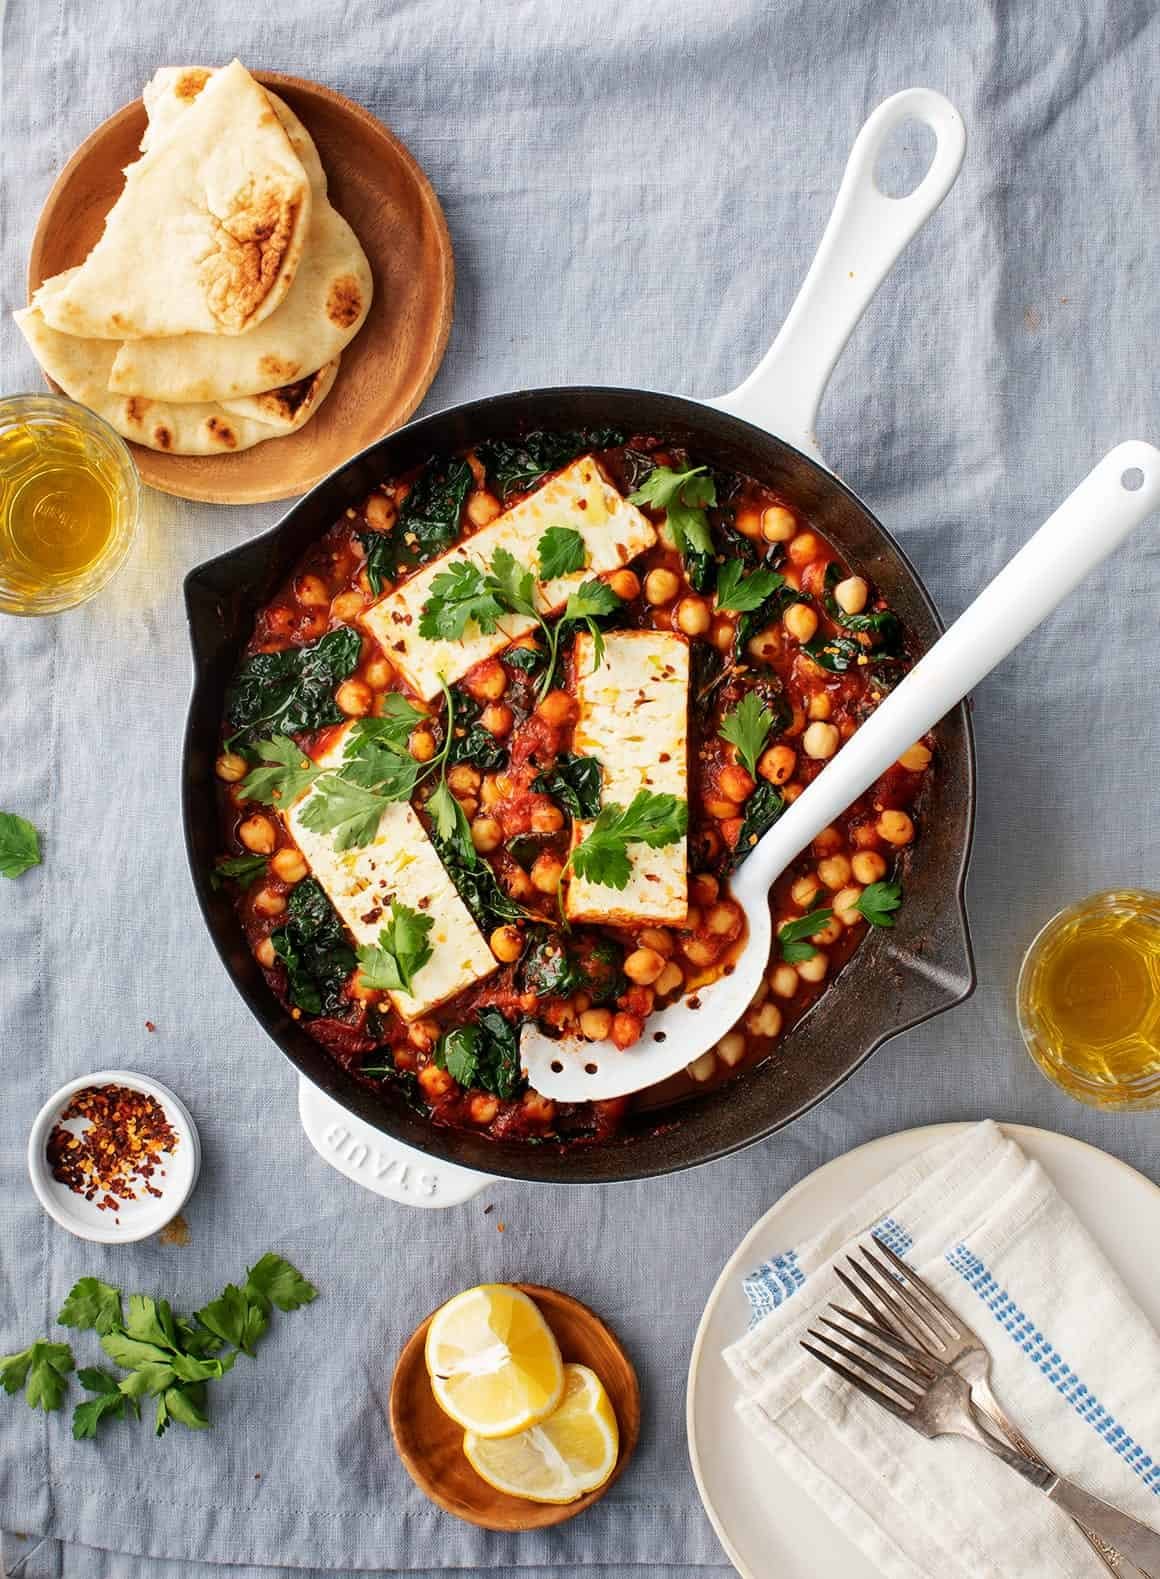 Baked Feta with Chickpeas & Kale